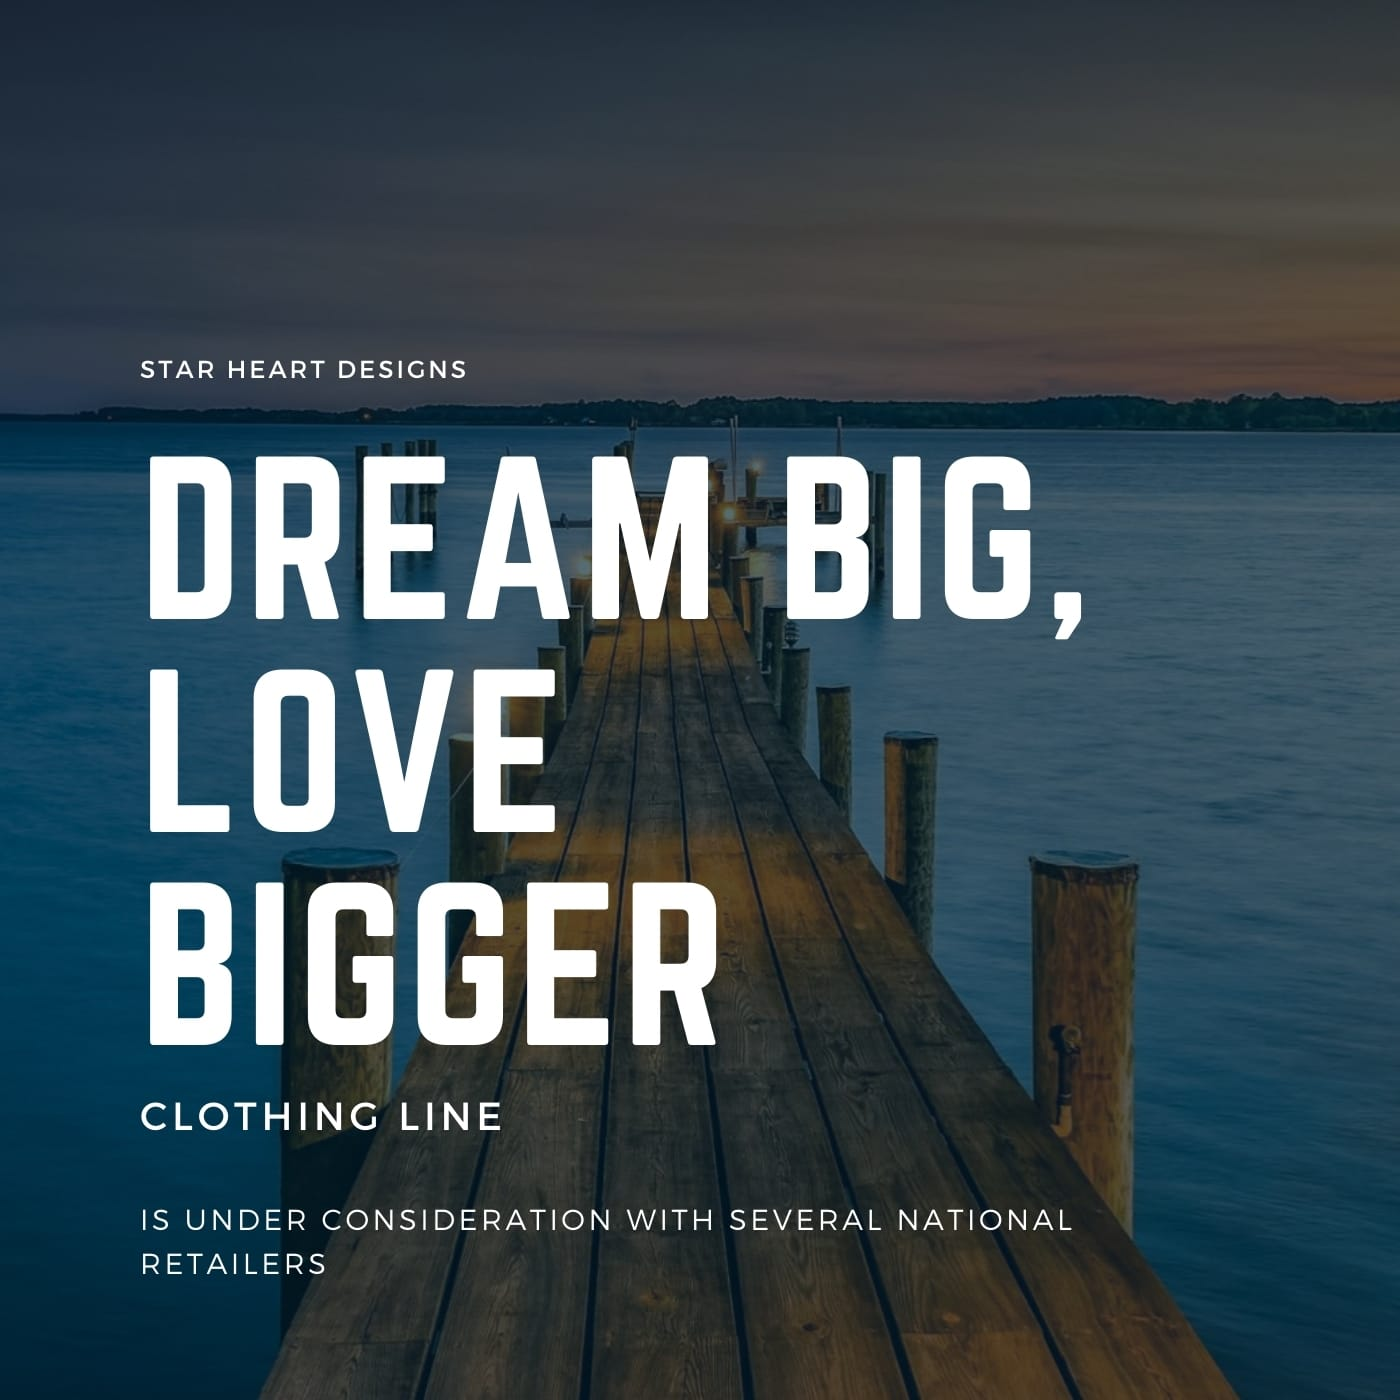 Star Heart Designs Dream Big, Love Bigger clothing line is under consideration with several national retailers